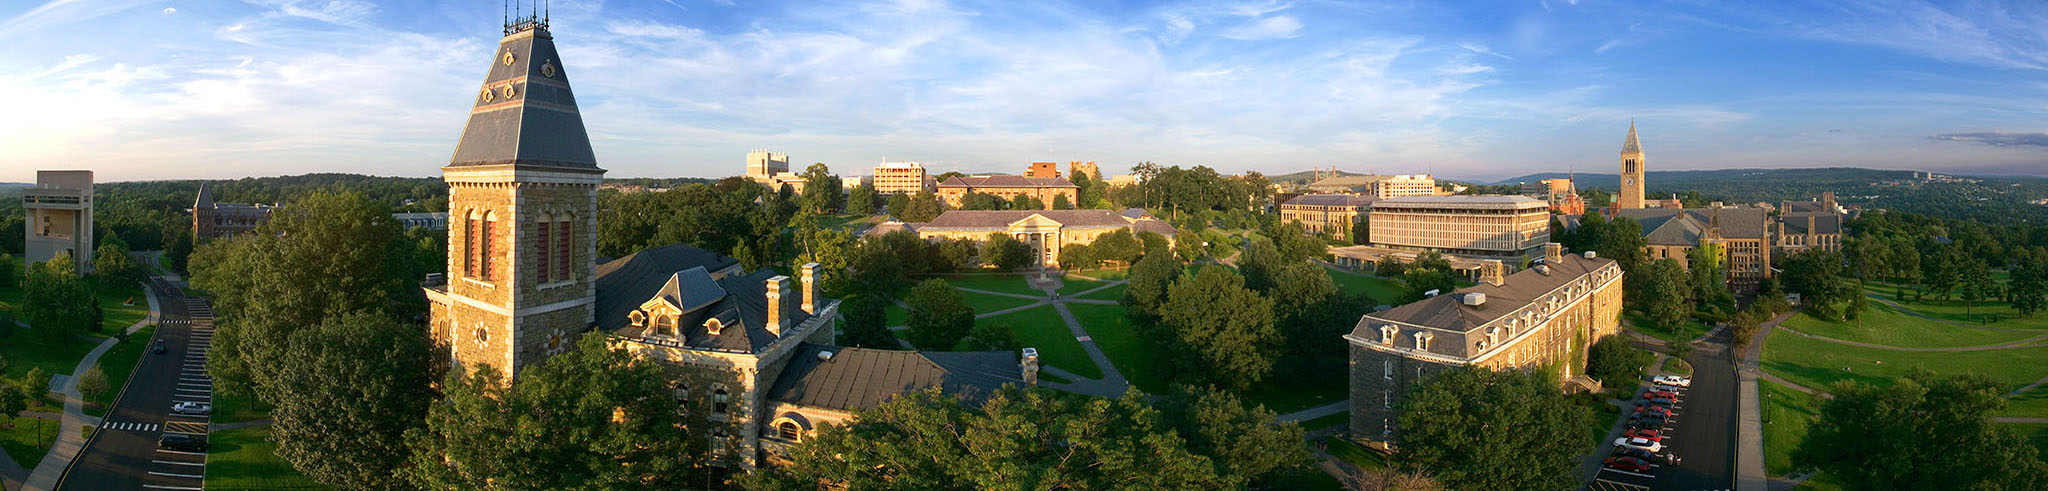 Photo of Arts Quad